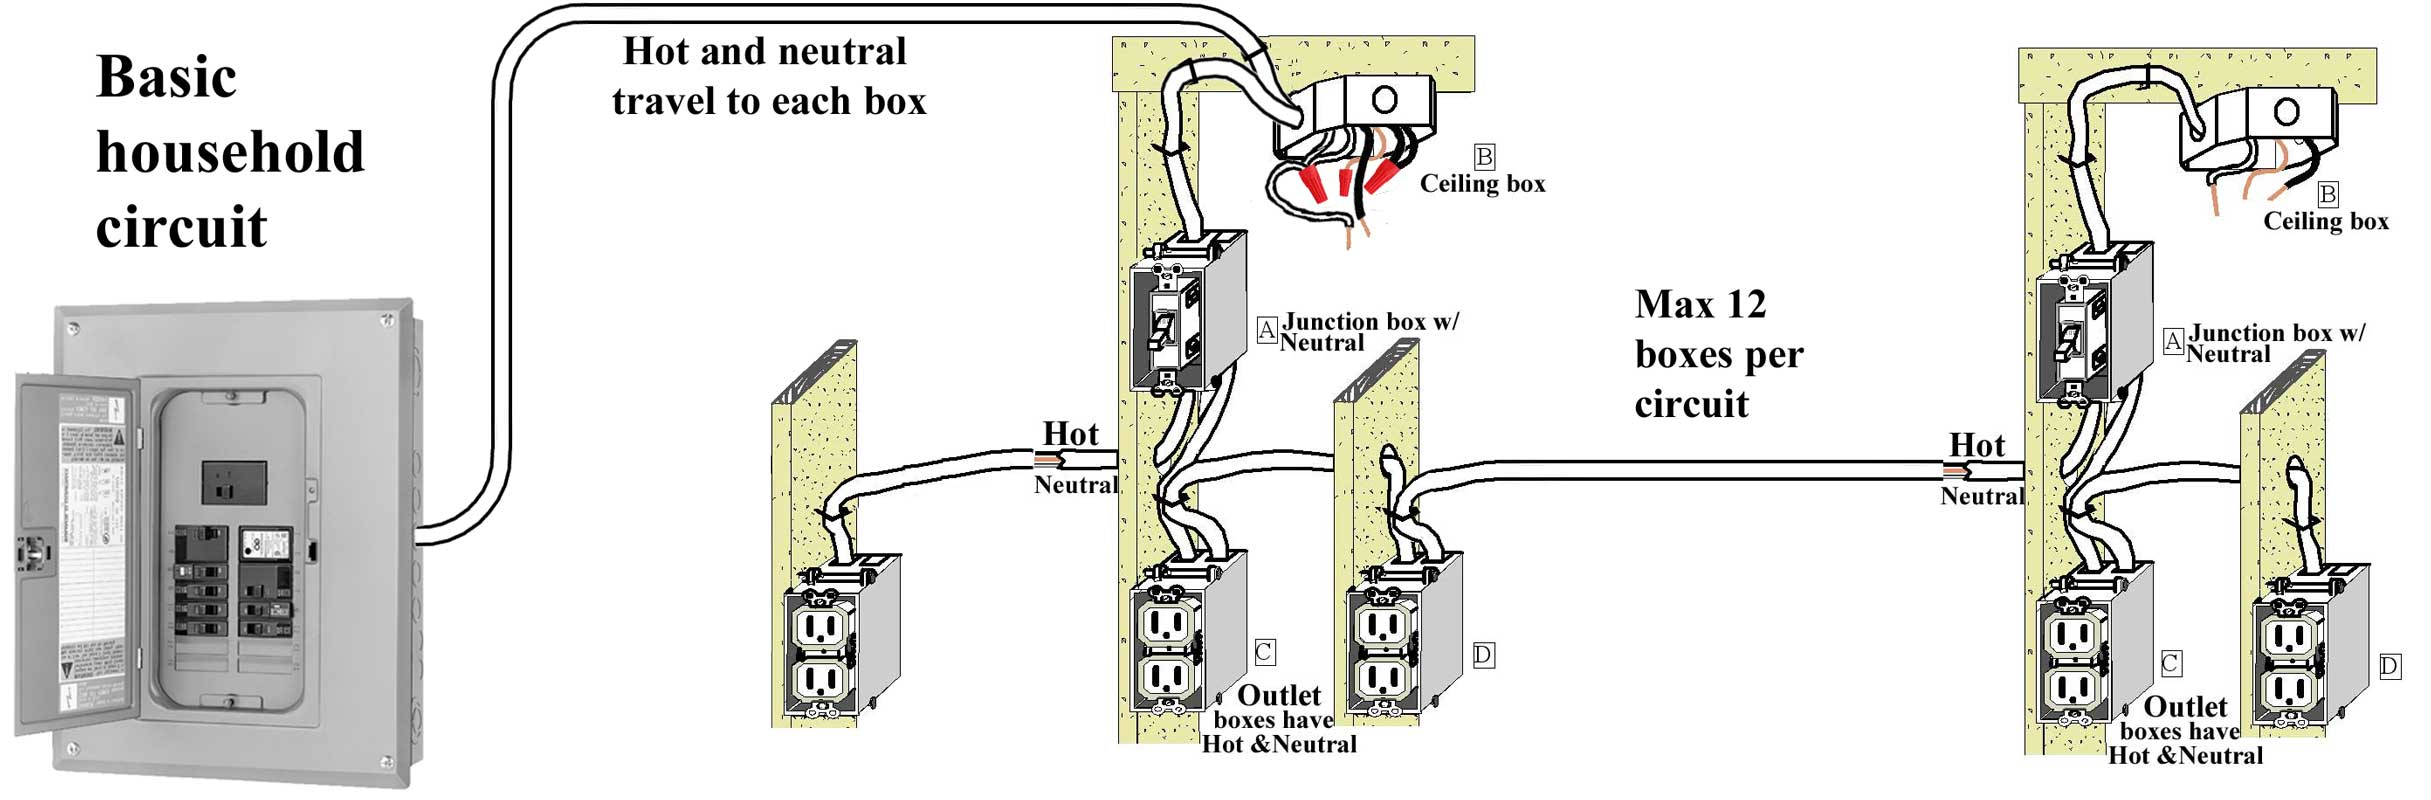 How To Drop Wire From Attic Into Old Work Box 3 Way Switch Wiring Diagram With 2 Lights Larger Image